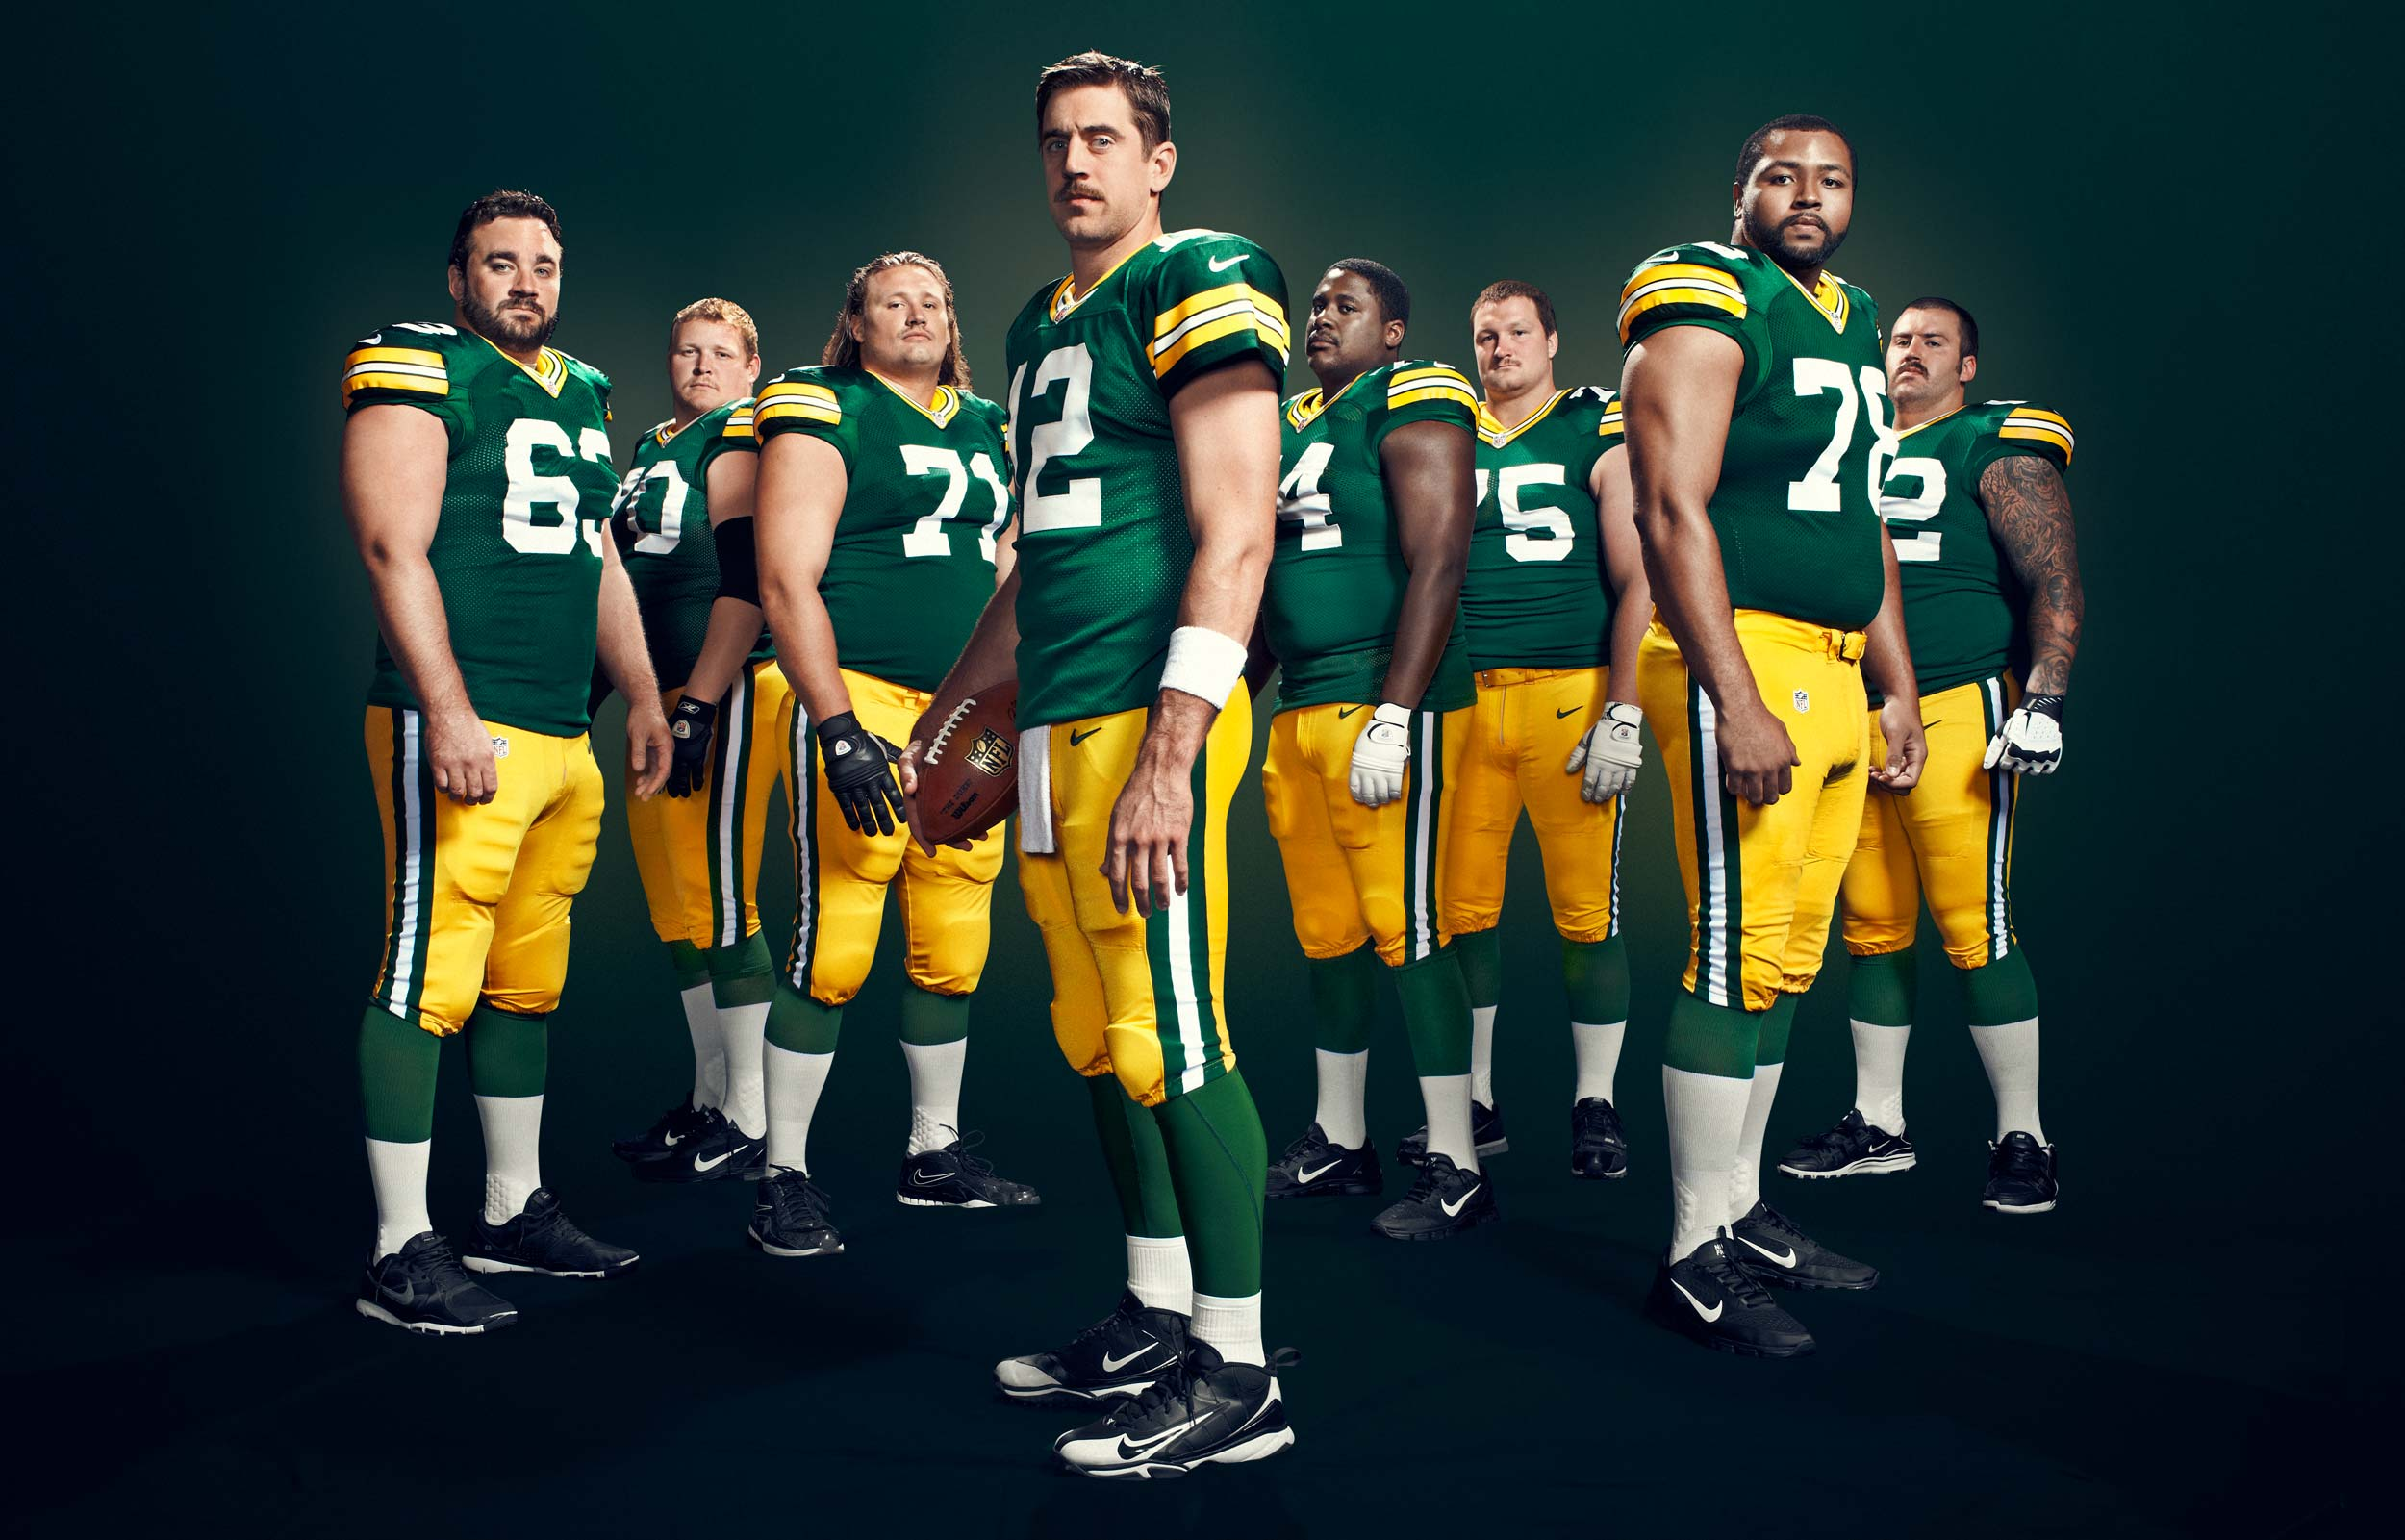 001_ATHLETES_710_Packers_1